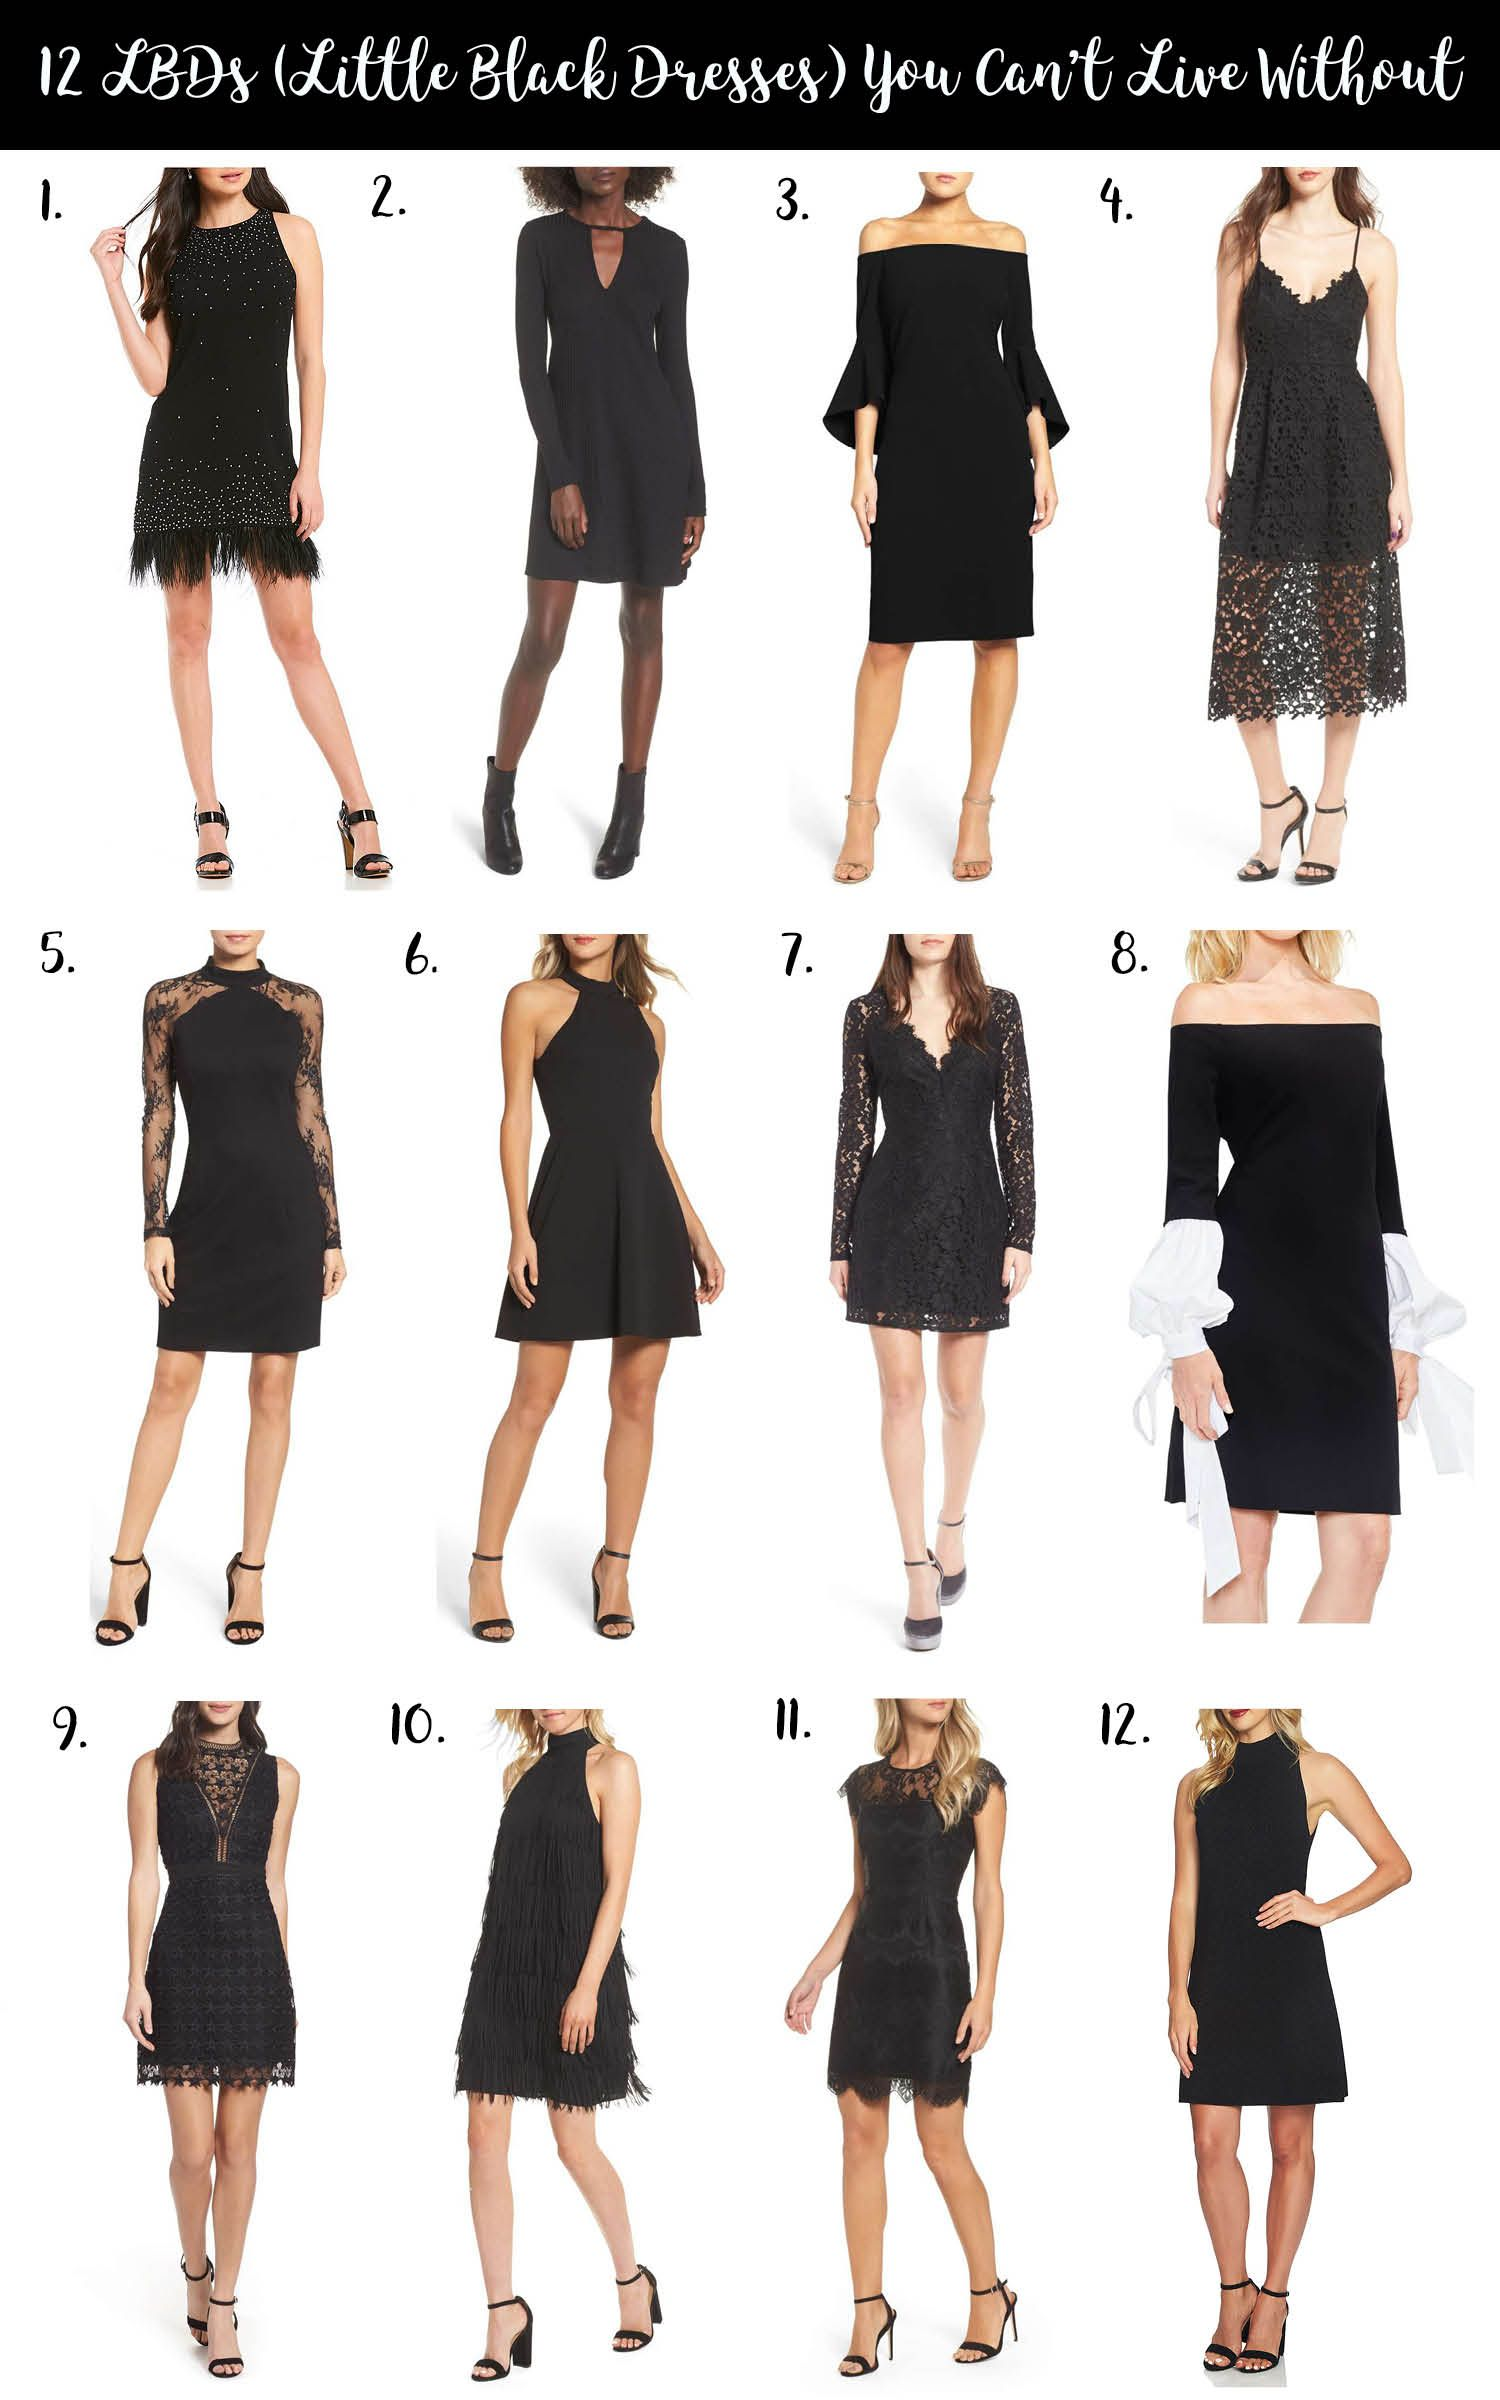 10 Affordable Little Black Dresses Fashion Dressed To Kill Lbd Outfit Casual Party Outfit Black Dress Style [ 2400 x 1500 Pixel ]